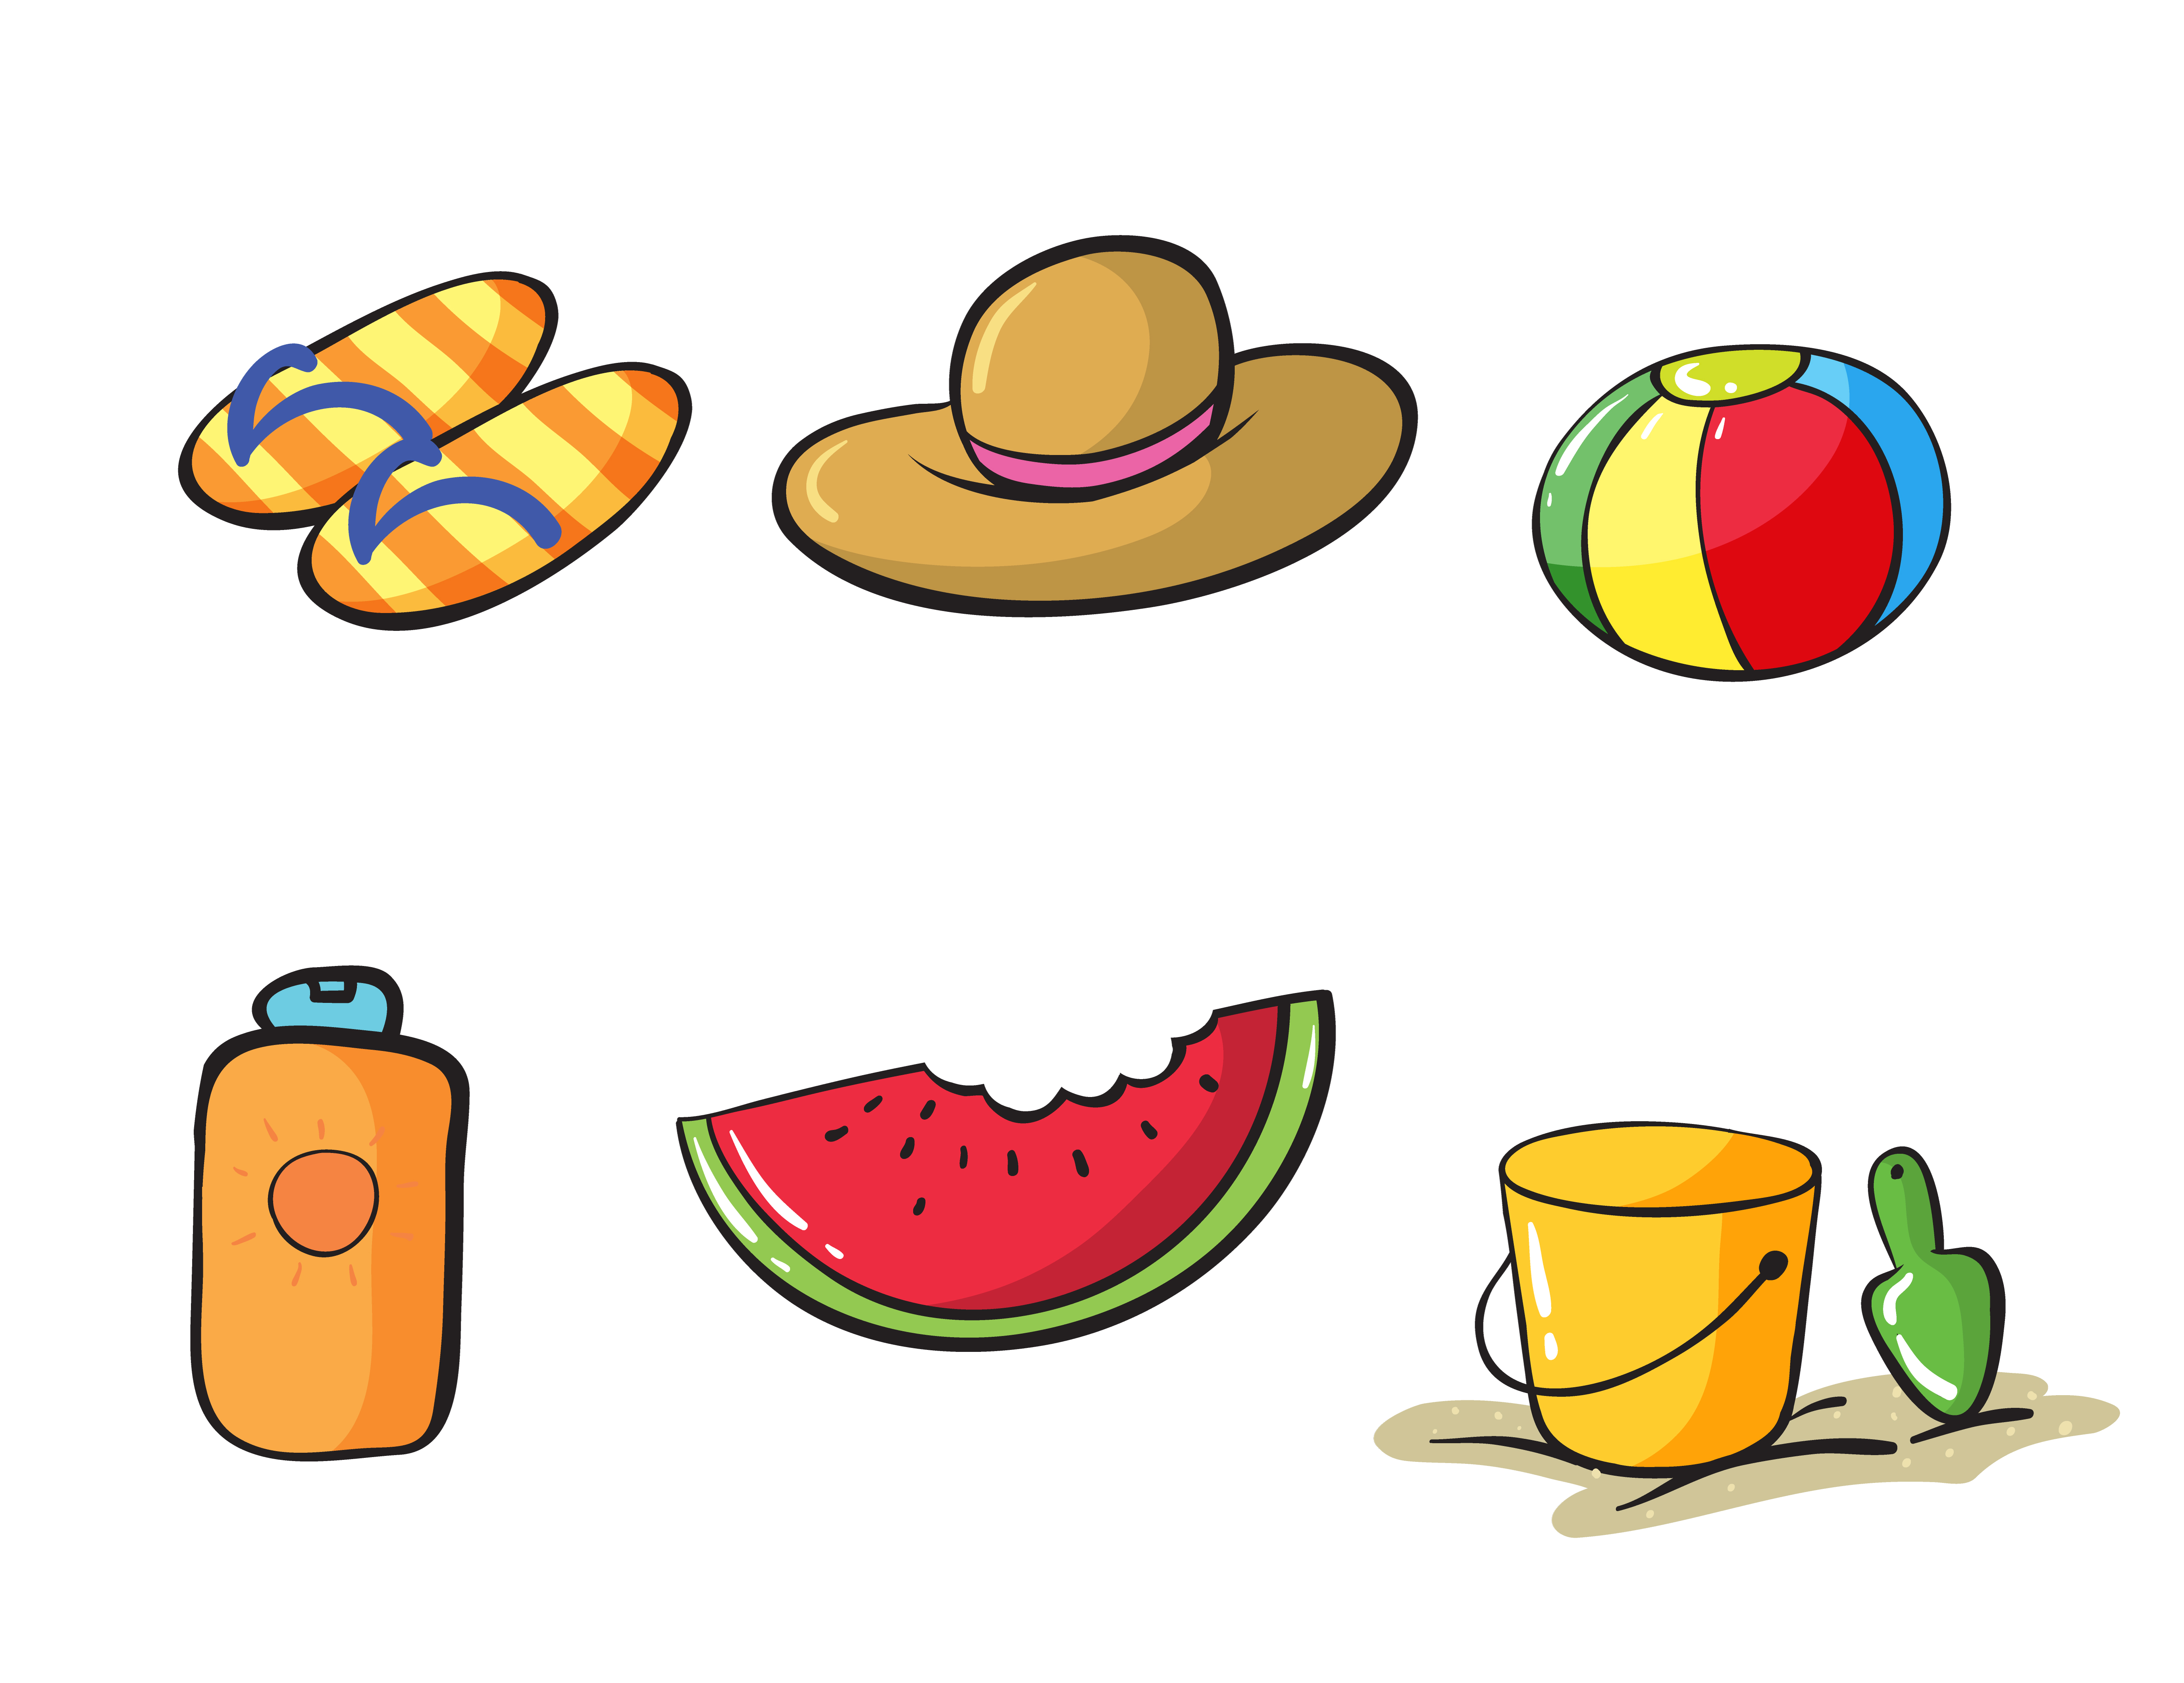 various beach objects - Download Free Vectors, Clipart ...